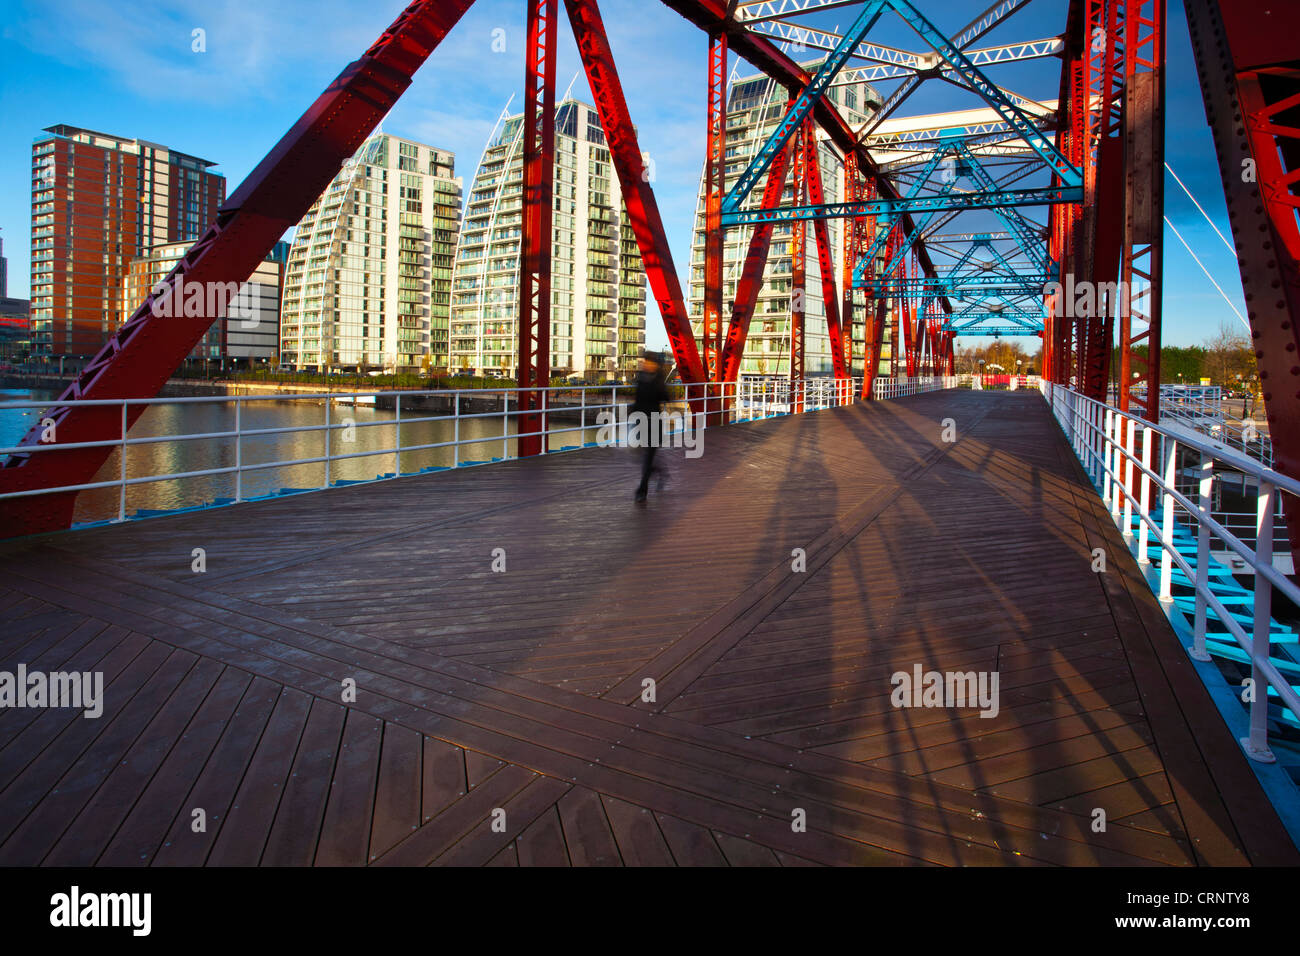 NV buildings and Detroit Bridge over the Manchester Ship Canal in Salford. - Stock Image